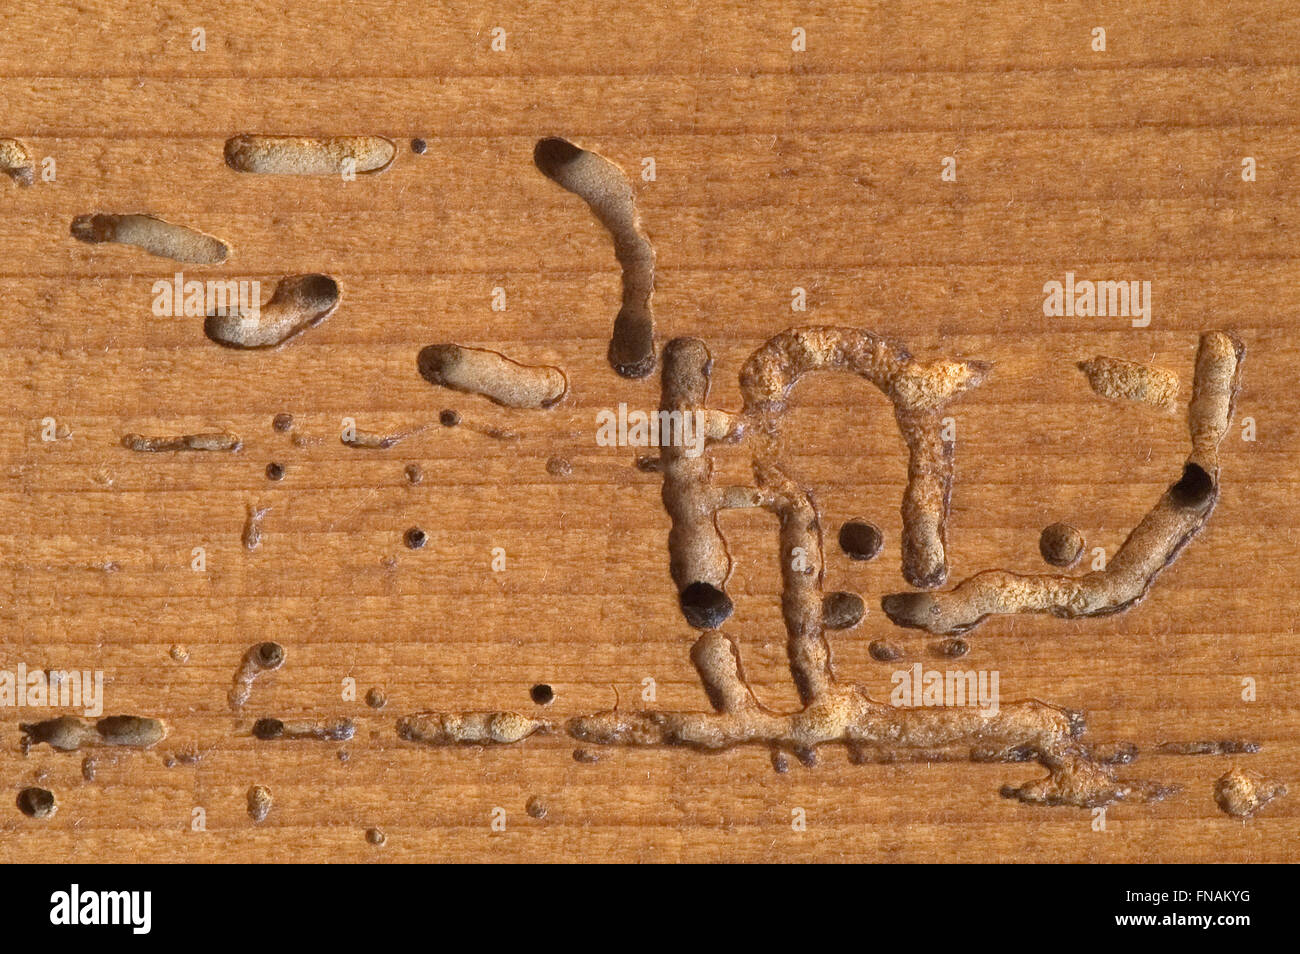 Larvae tunnels in wooden furniture made by deathwatch beetles   death watch  beetle  Xestobium rufovillosum. Larvae tunnels in wooden furniture made by deathwatch beetles